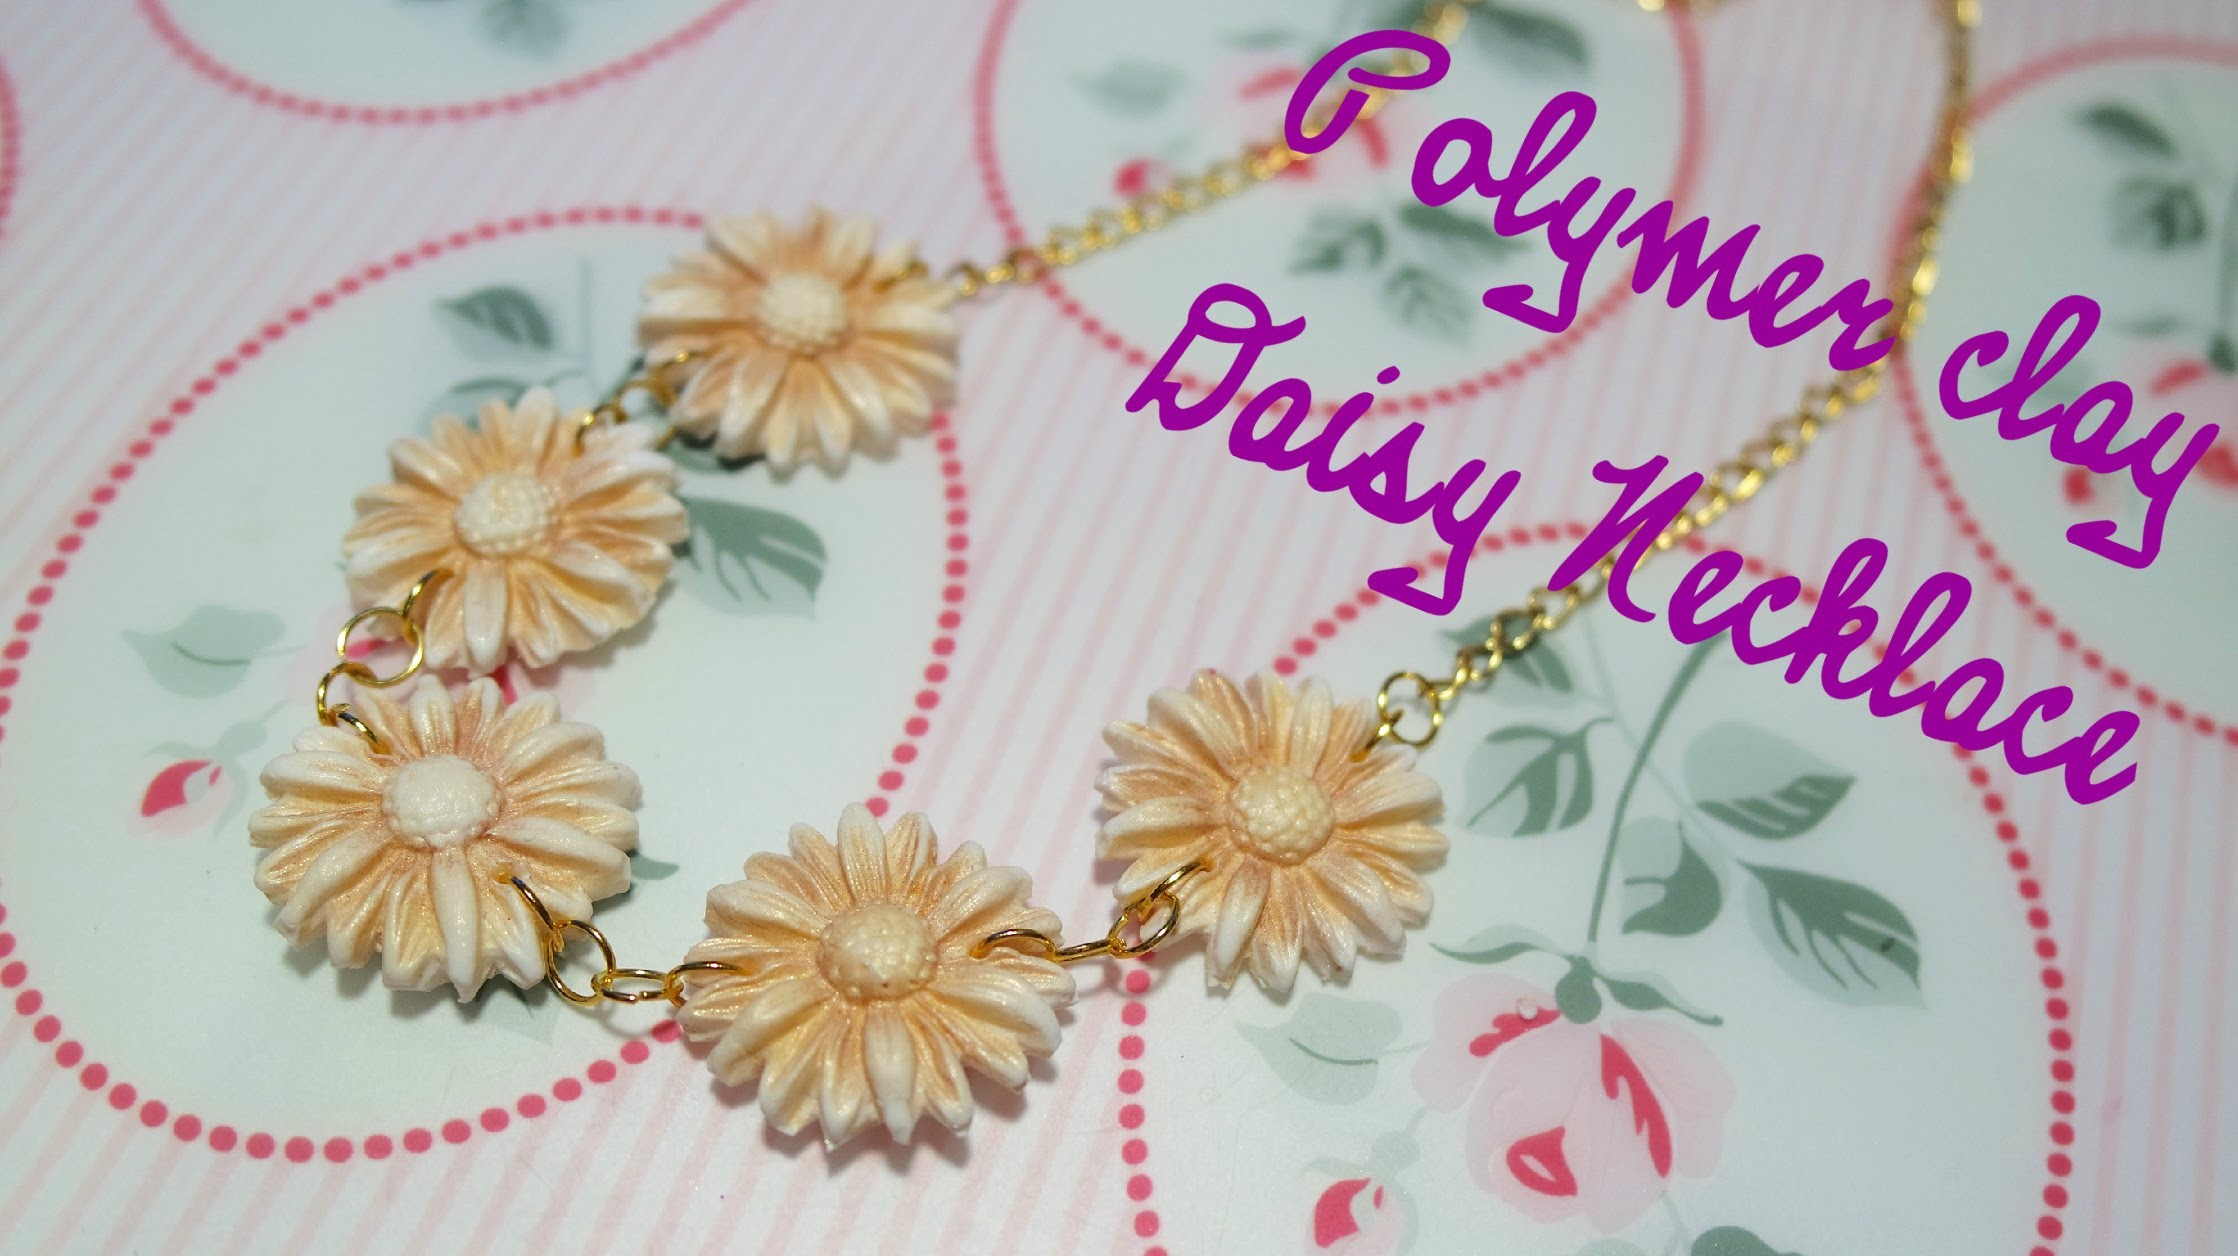 DIY Gold Daisy Necklace | Collana con Margherite Dorate ❀